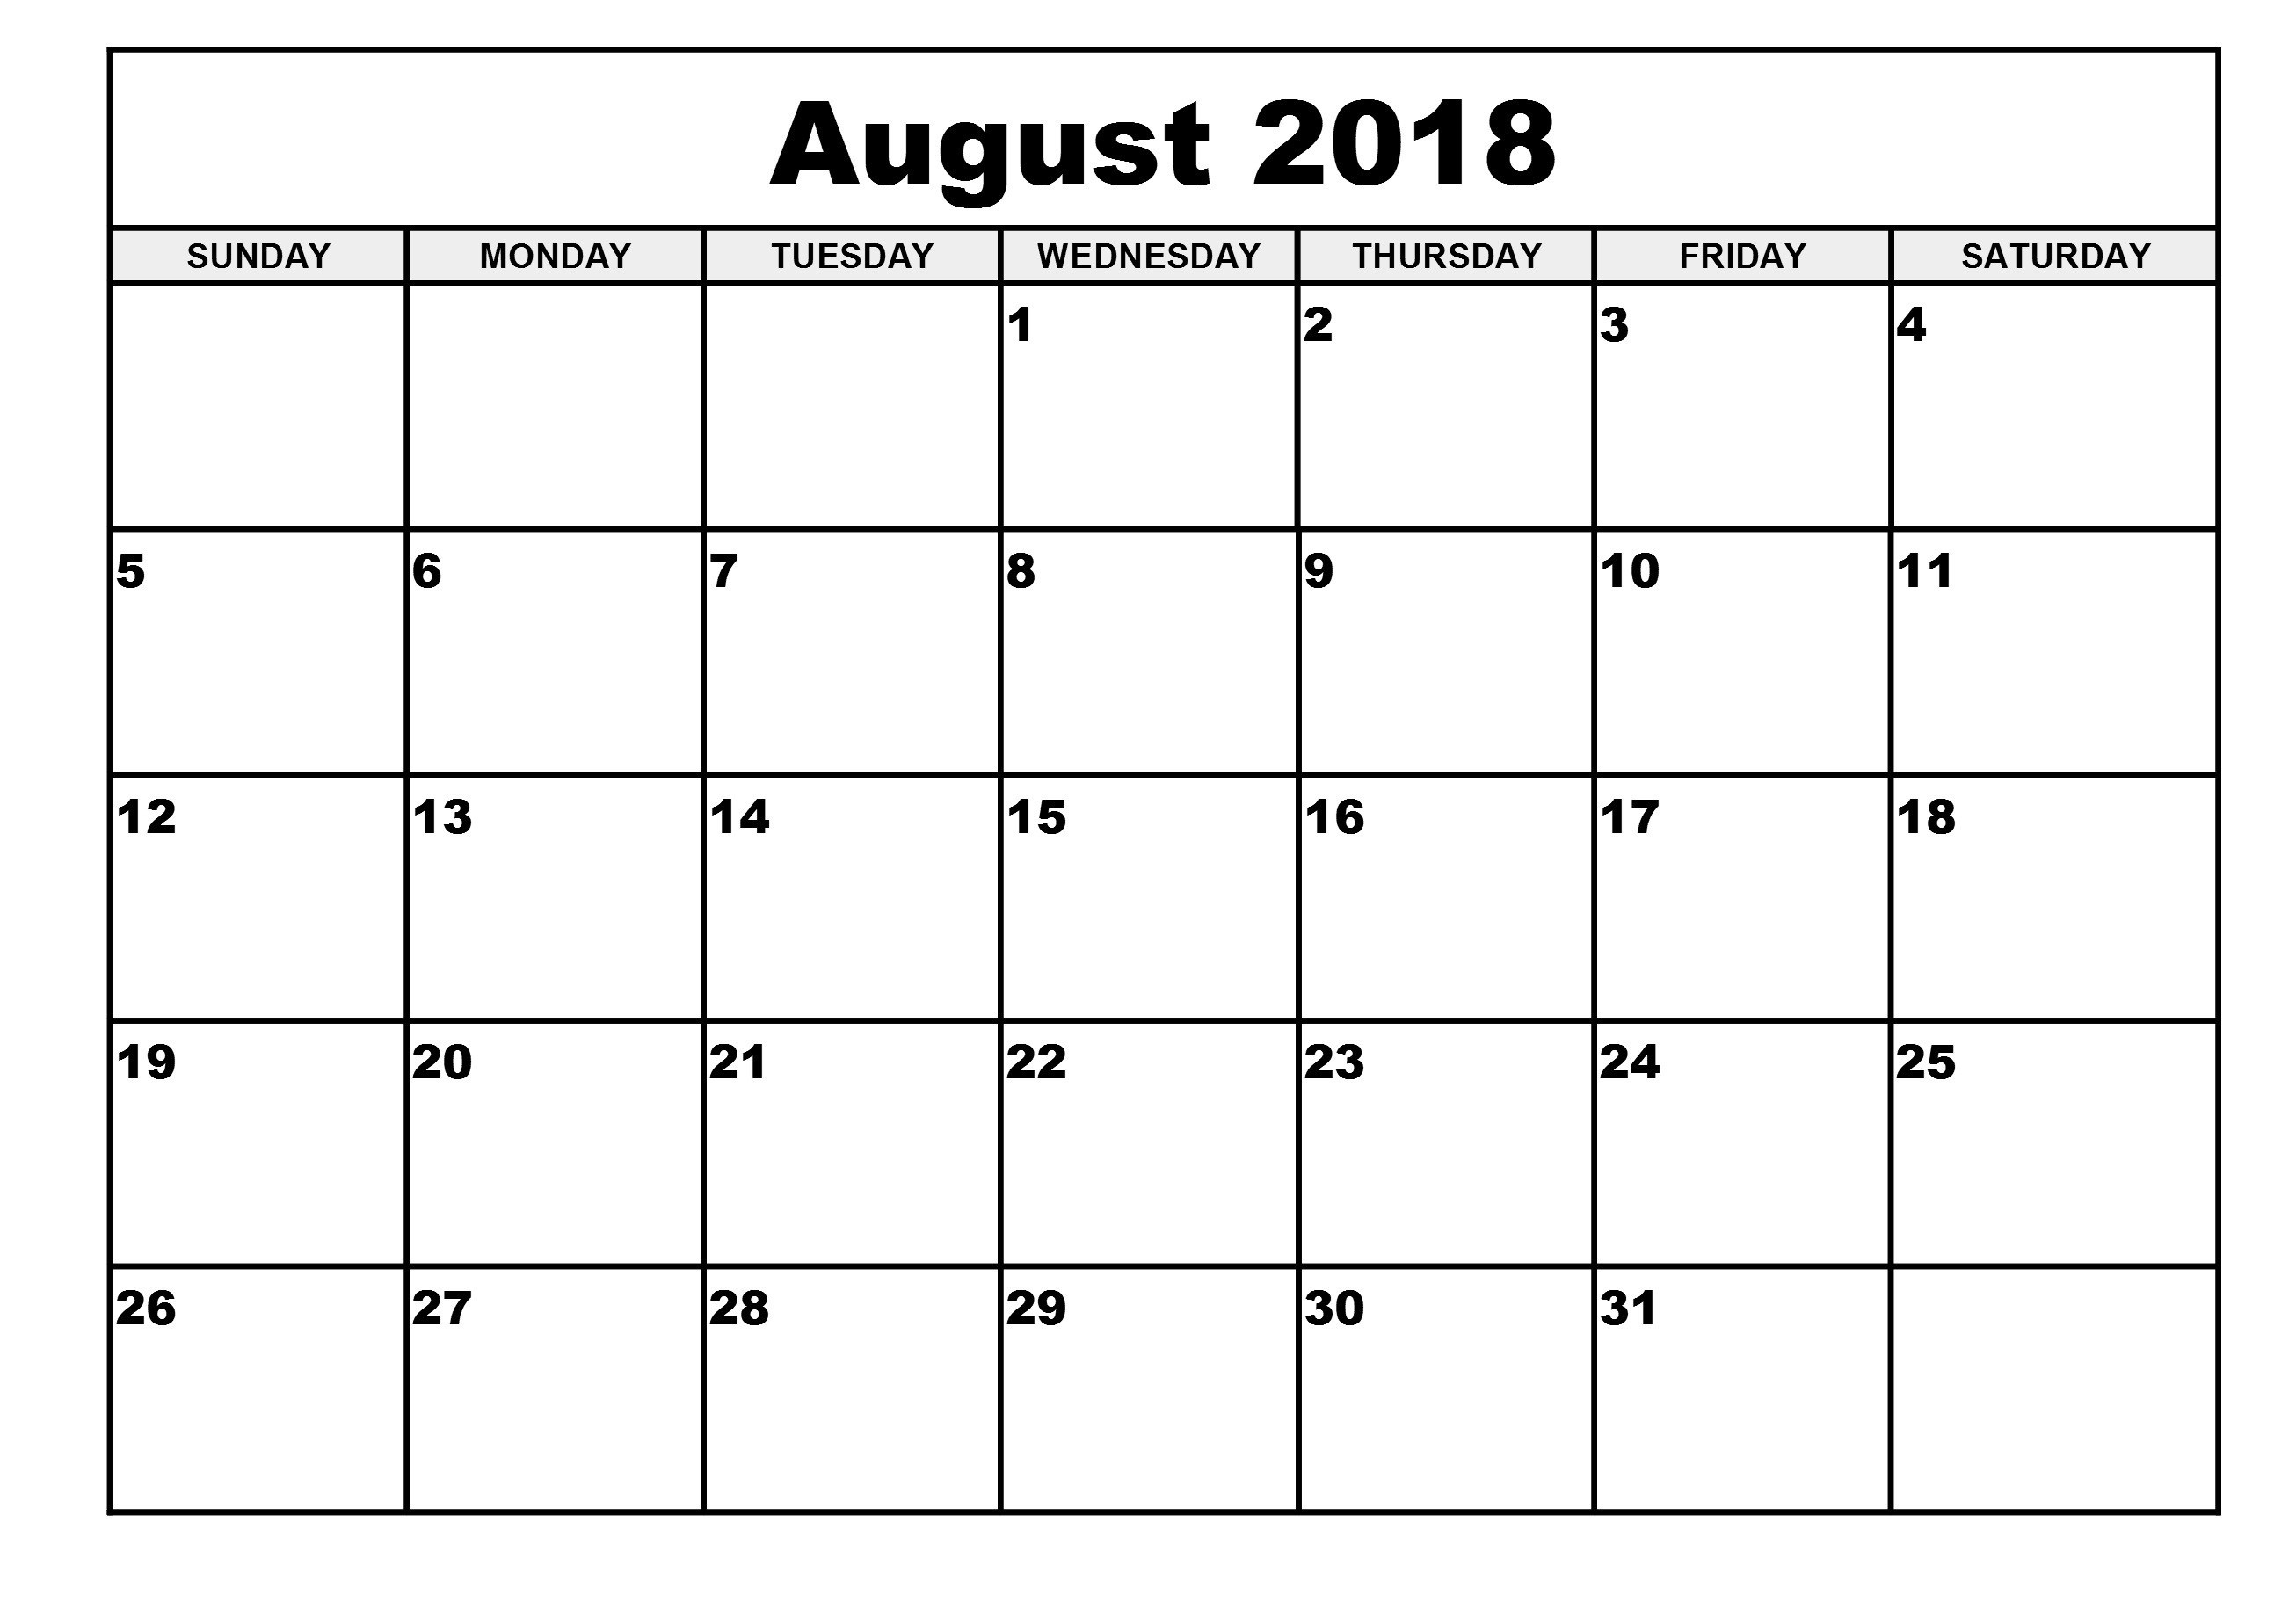 Monthly Calendar 2018 August – Delo.yogawithjo.co 3 Month Printable  3 Month Printable Calendar Online August